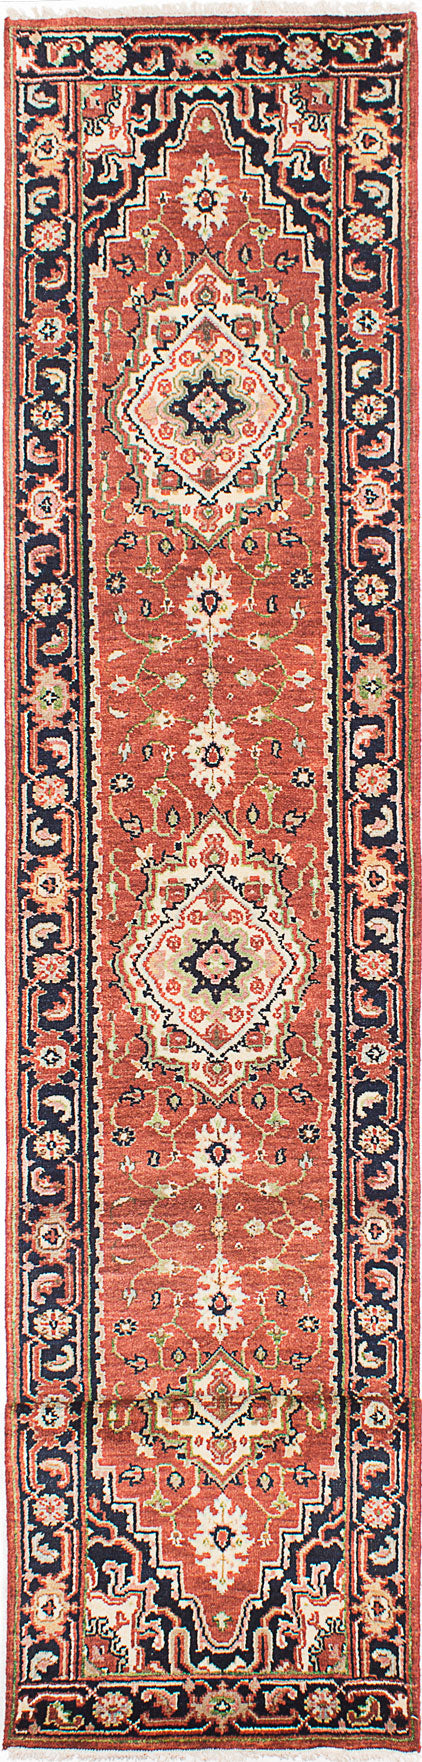 "Hand-knotted Indian Floral  Traditional Serapi-Heritage Runner rug  Dark Copper 2'7 x 16'1"" """